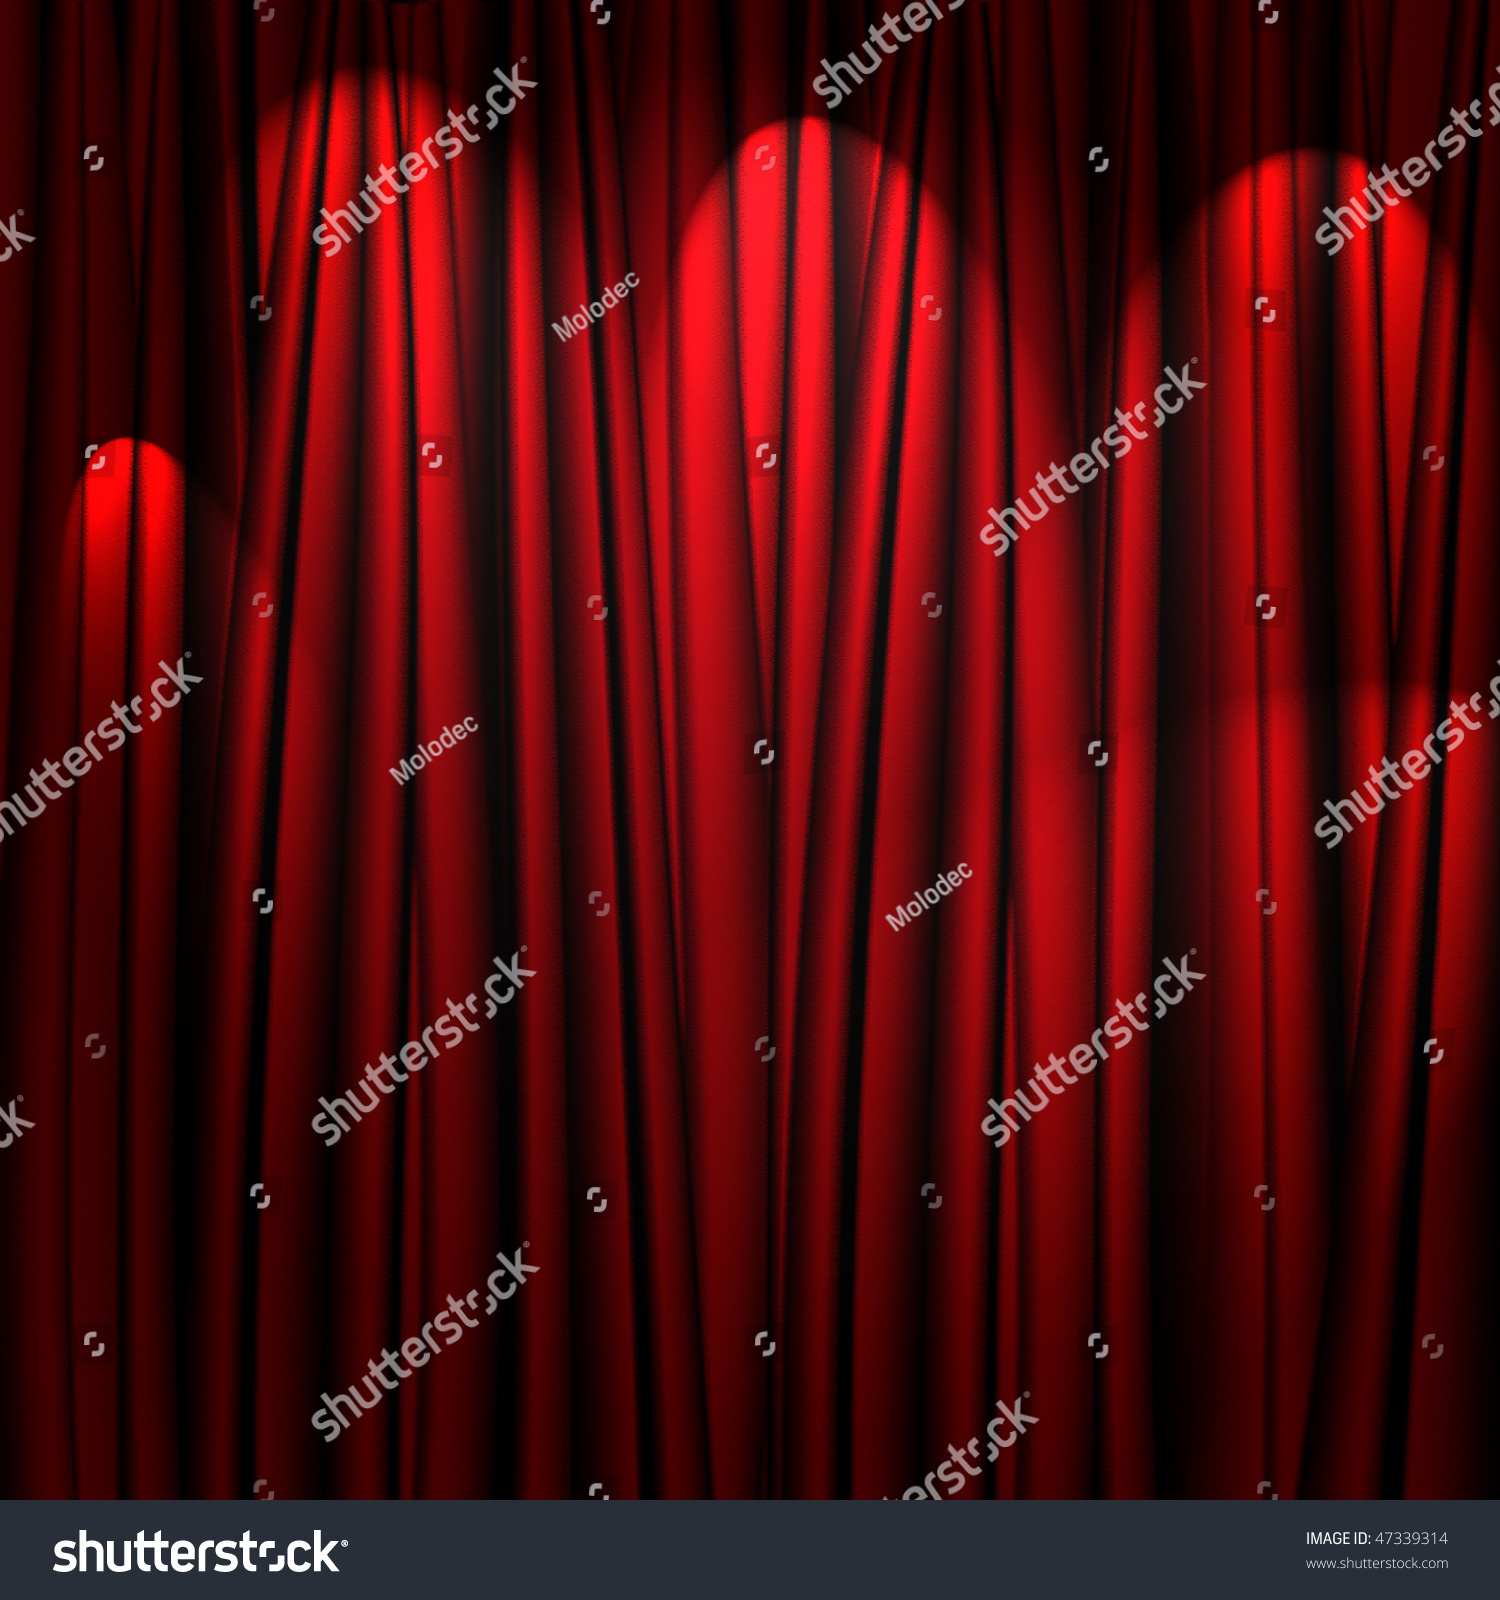 Red stage curtain with lights - Red Theater Curtain With Soft Lighting